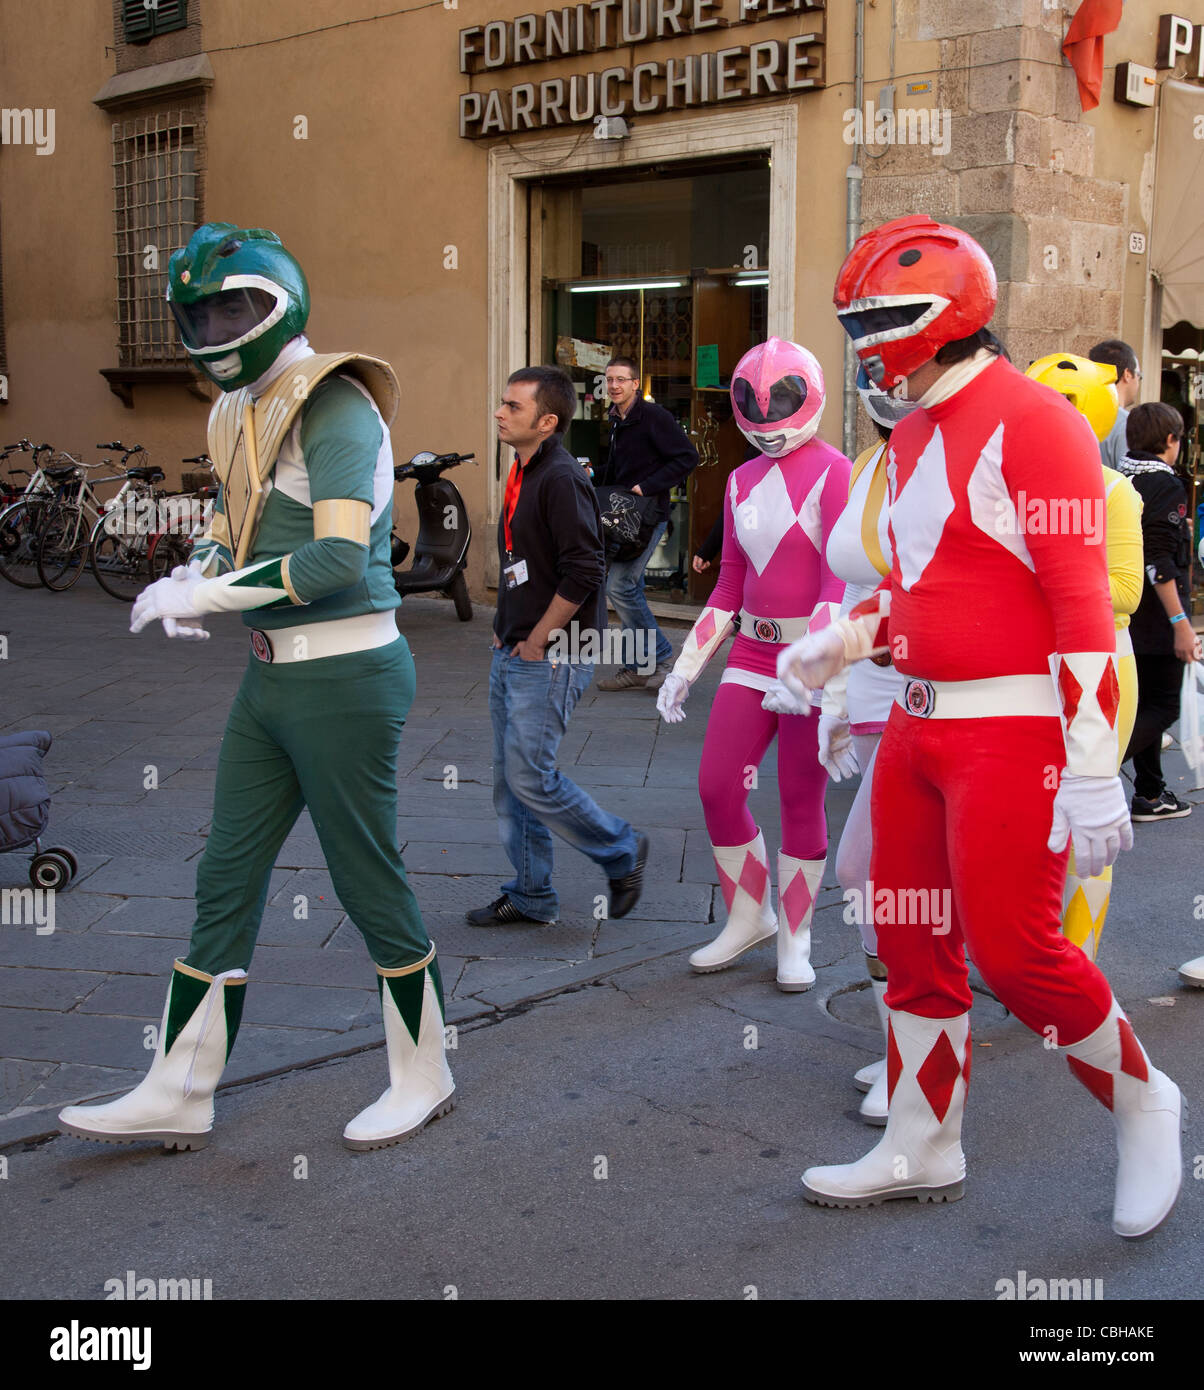 People dressed as Mighty Morphin' Power Rangers during Lucca comics and games festival, 2011 Tuscany, Italy Stock Photo